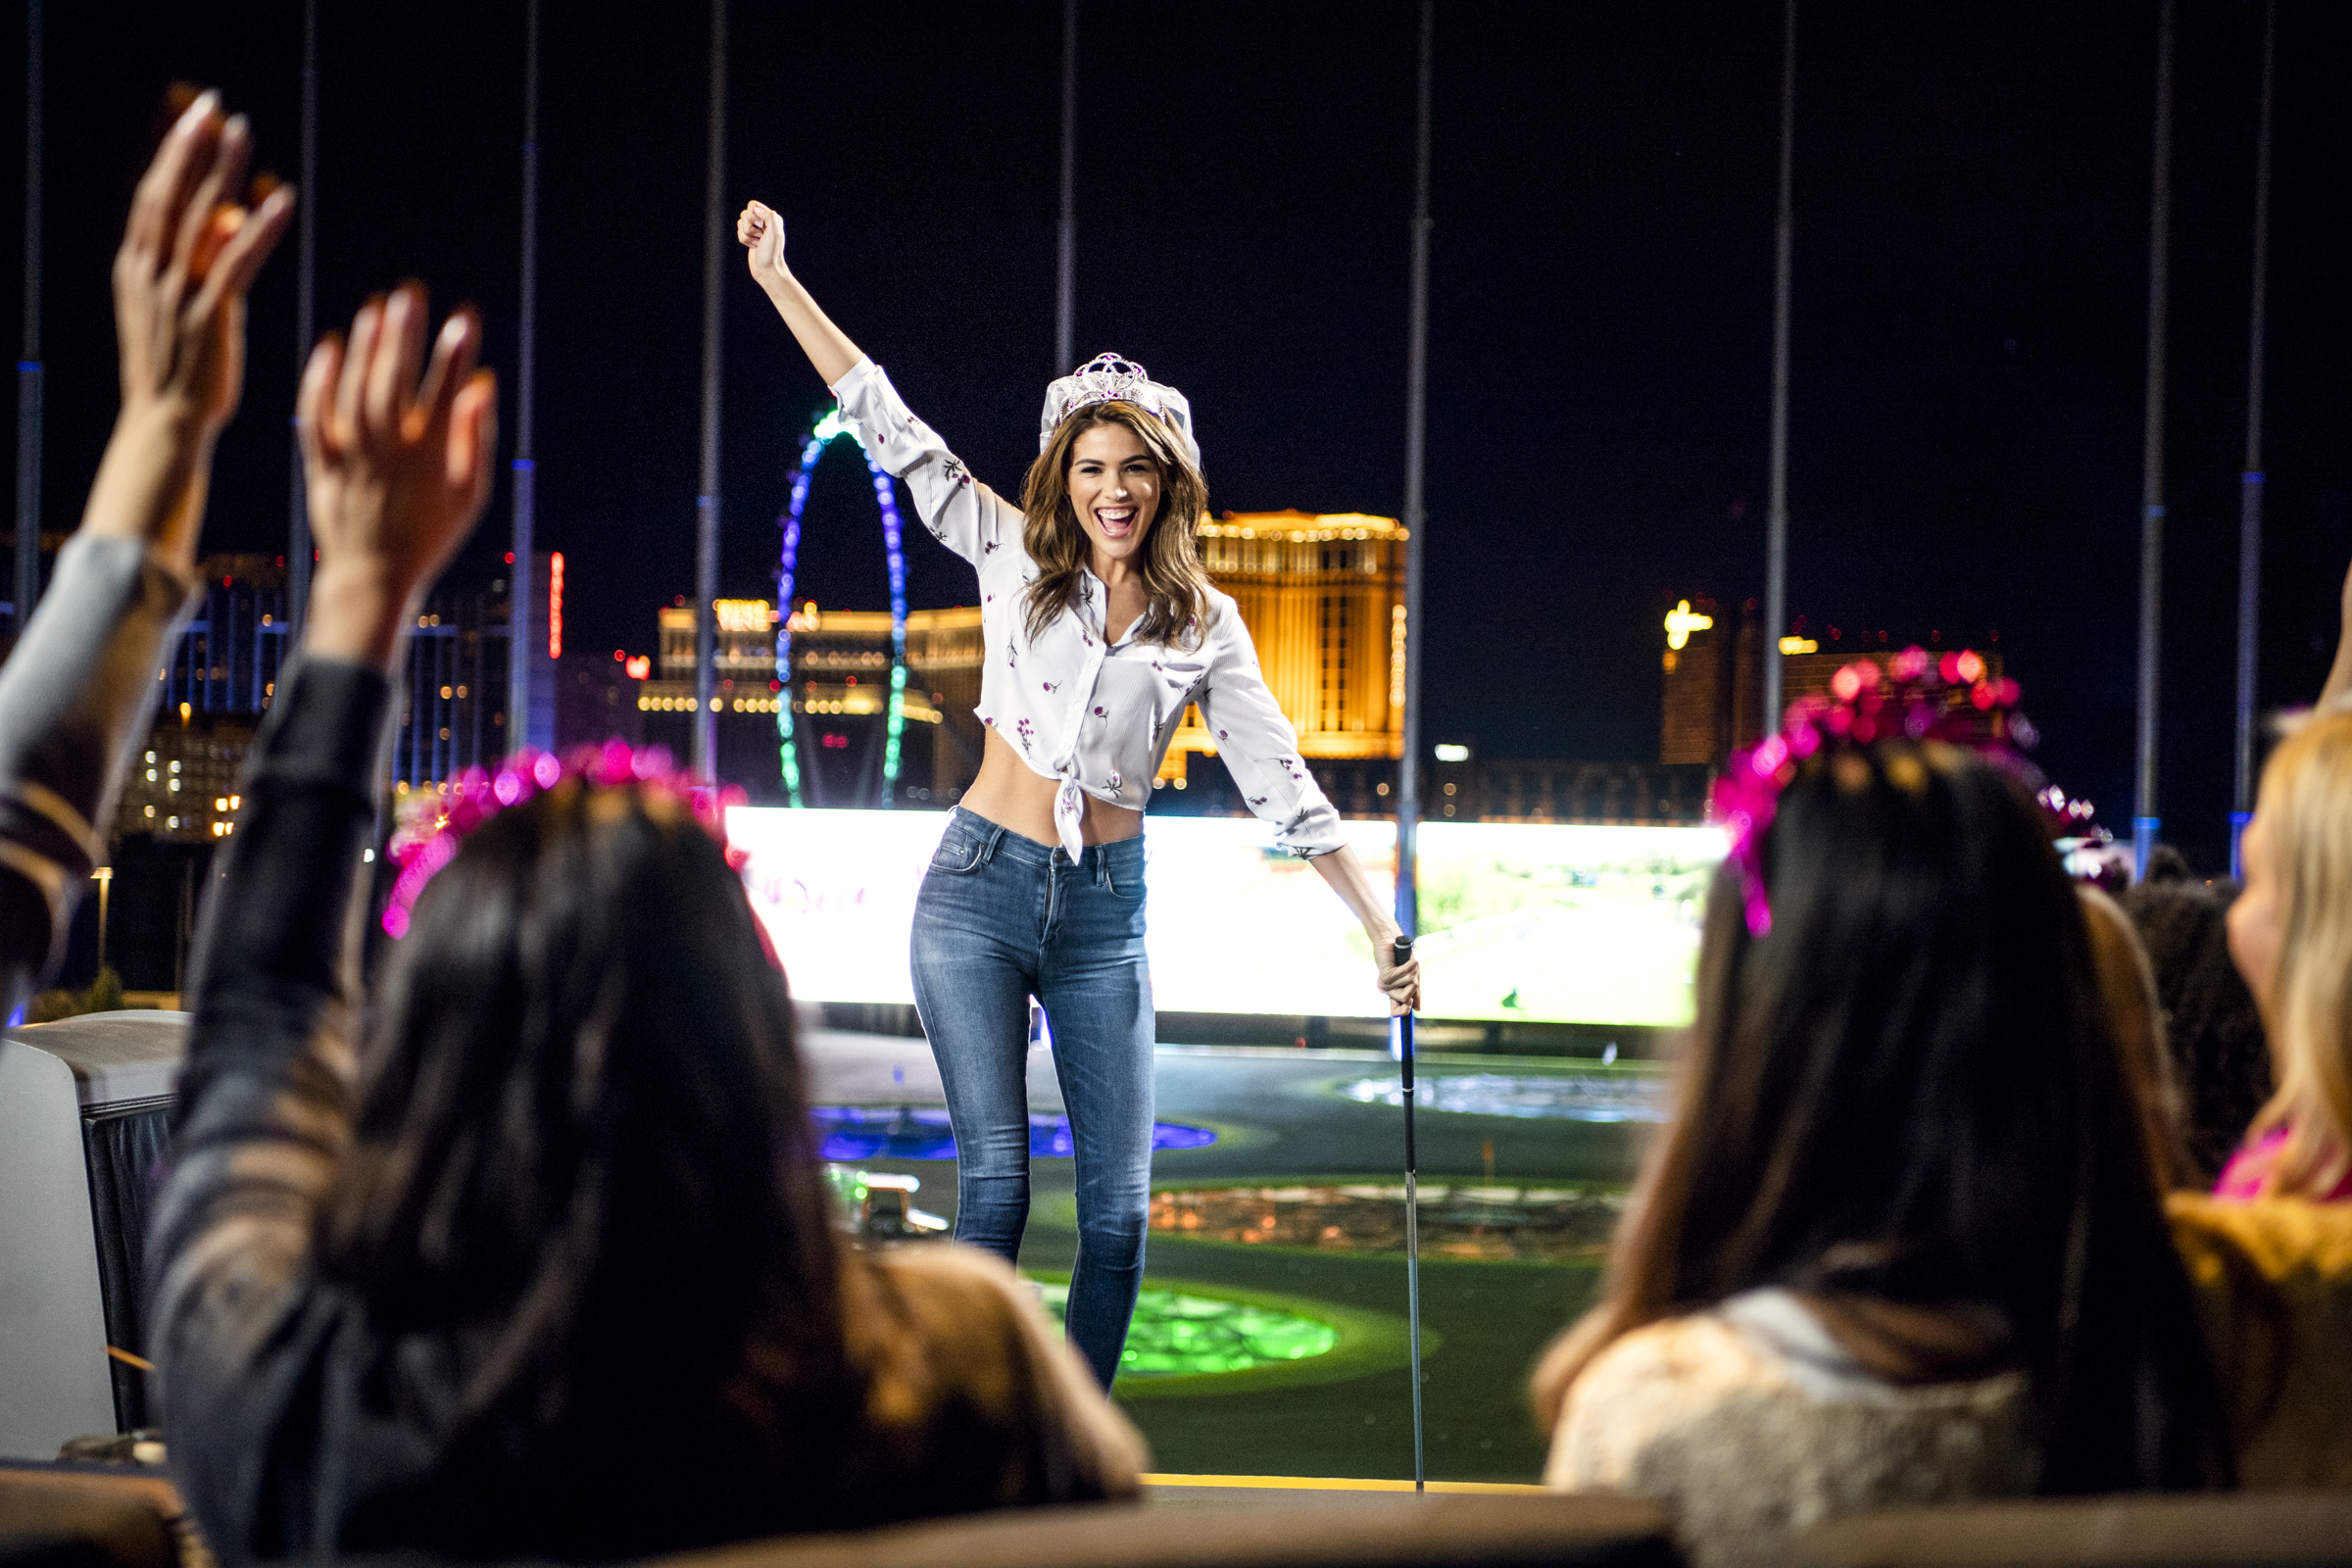 Top Golf - Vegas Lifestyle-3473-Edit.jpg